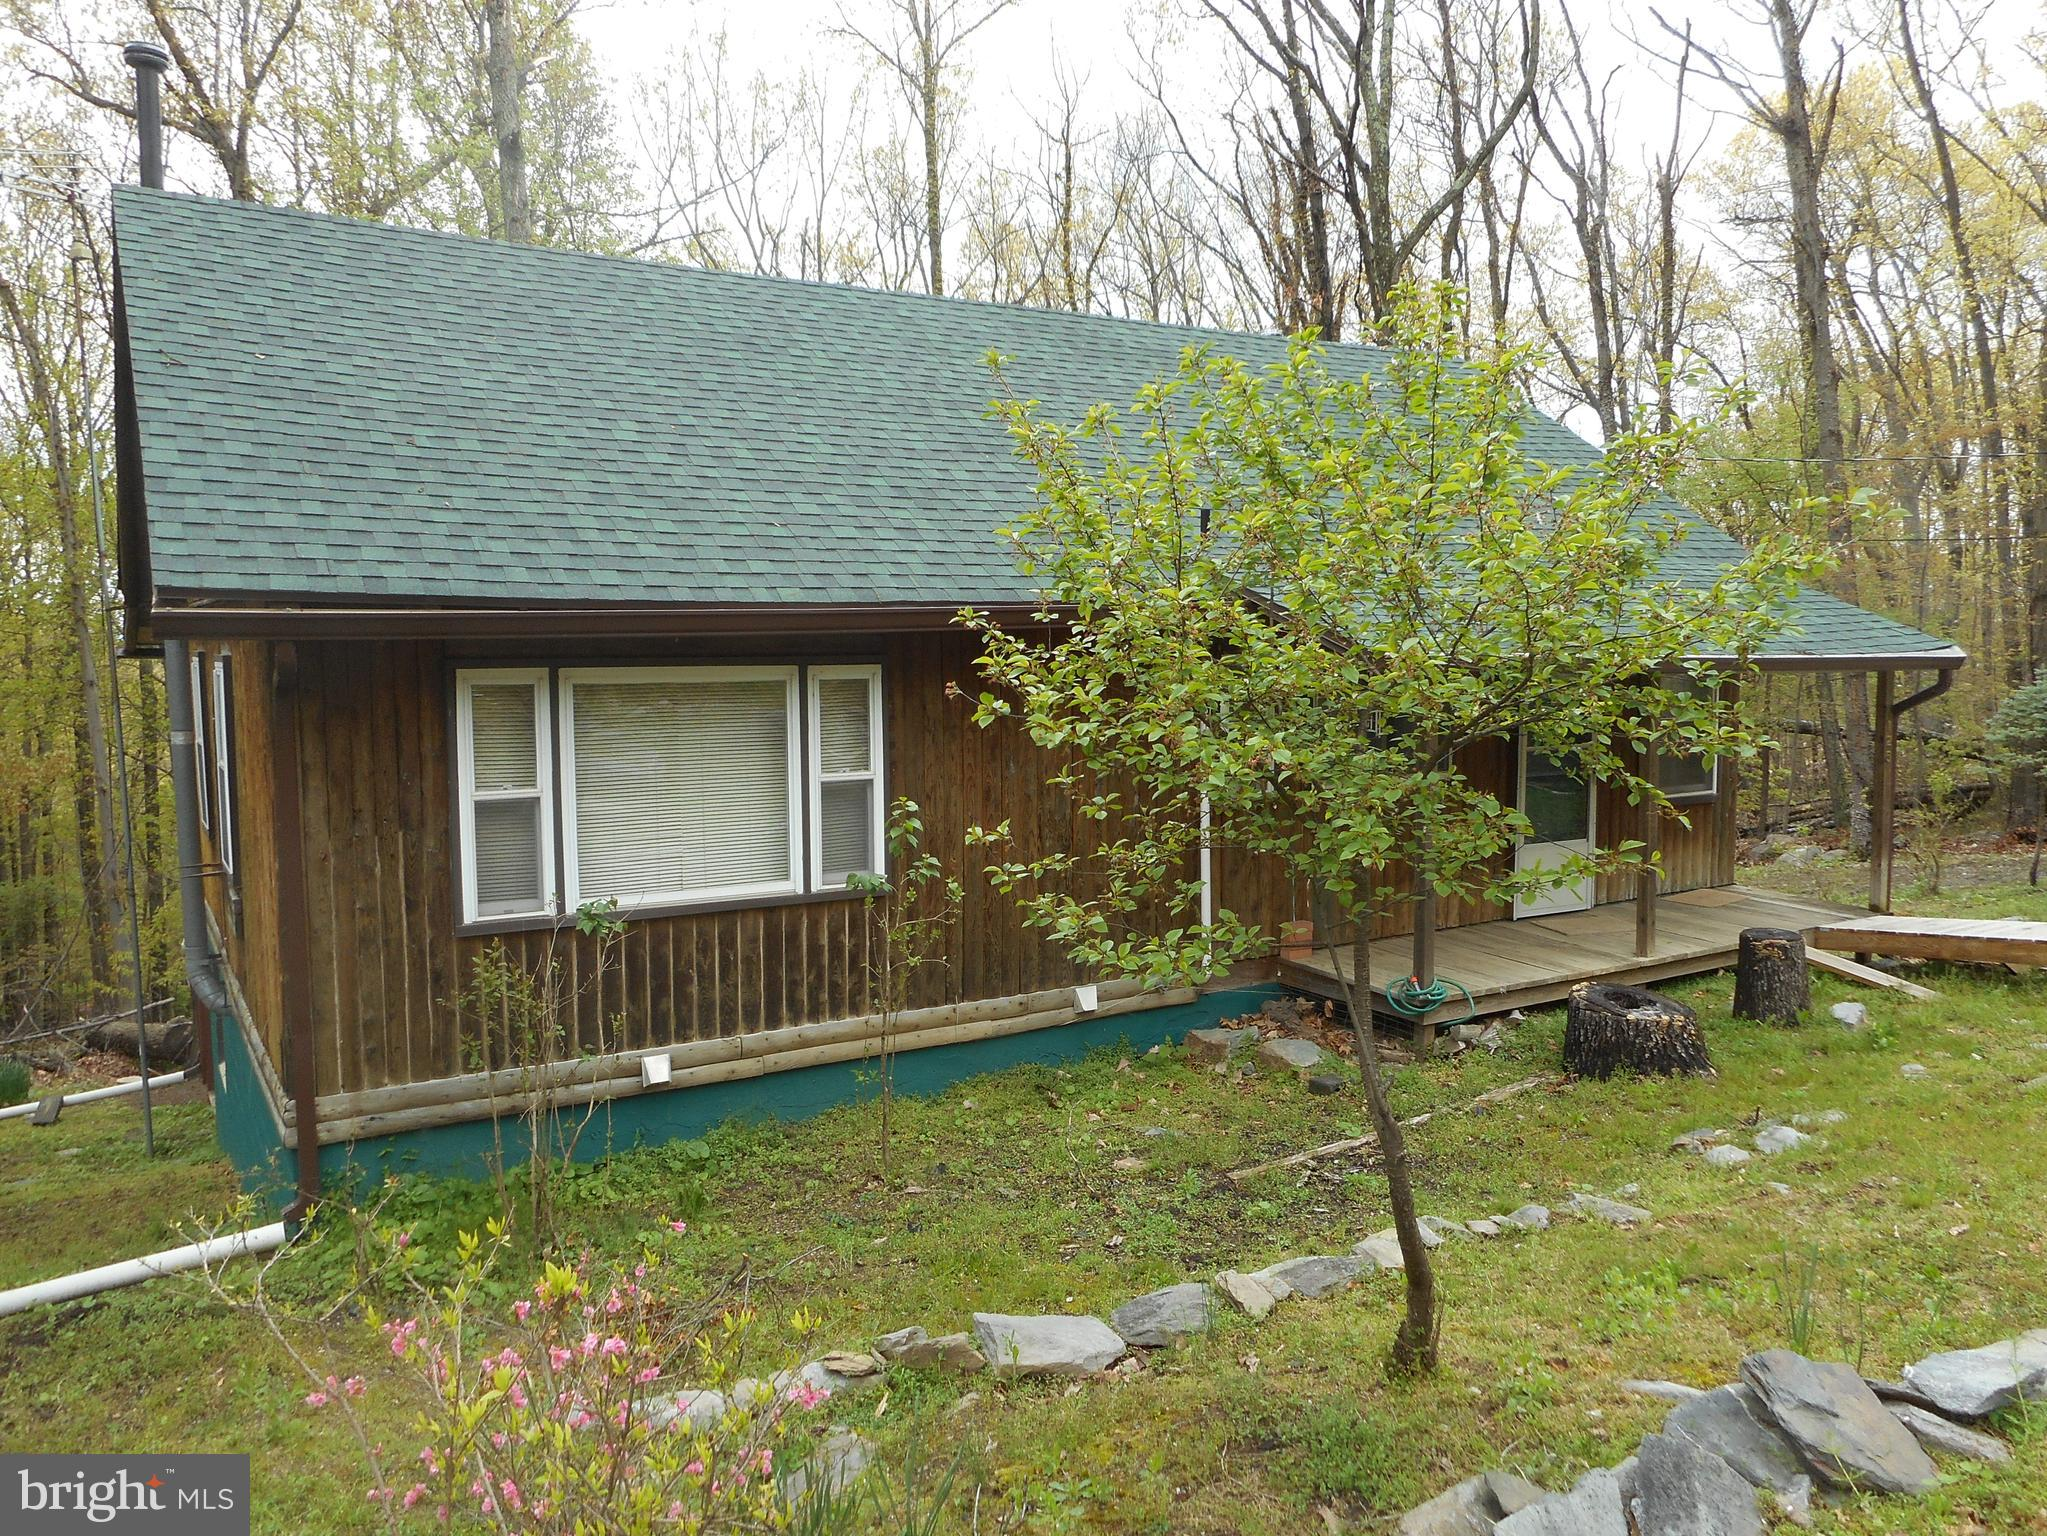 Charming log cabin on 1/2 ac lot in Shannondale.  Log beams, hardwood flooring, wood stove, large sc